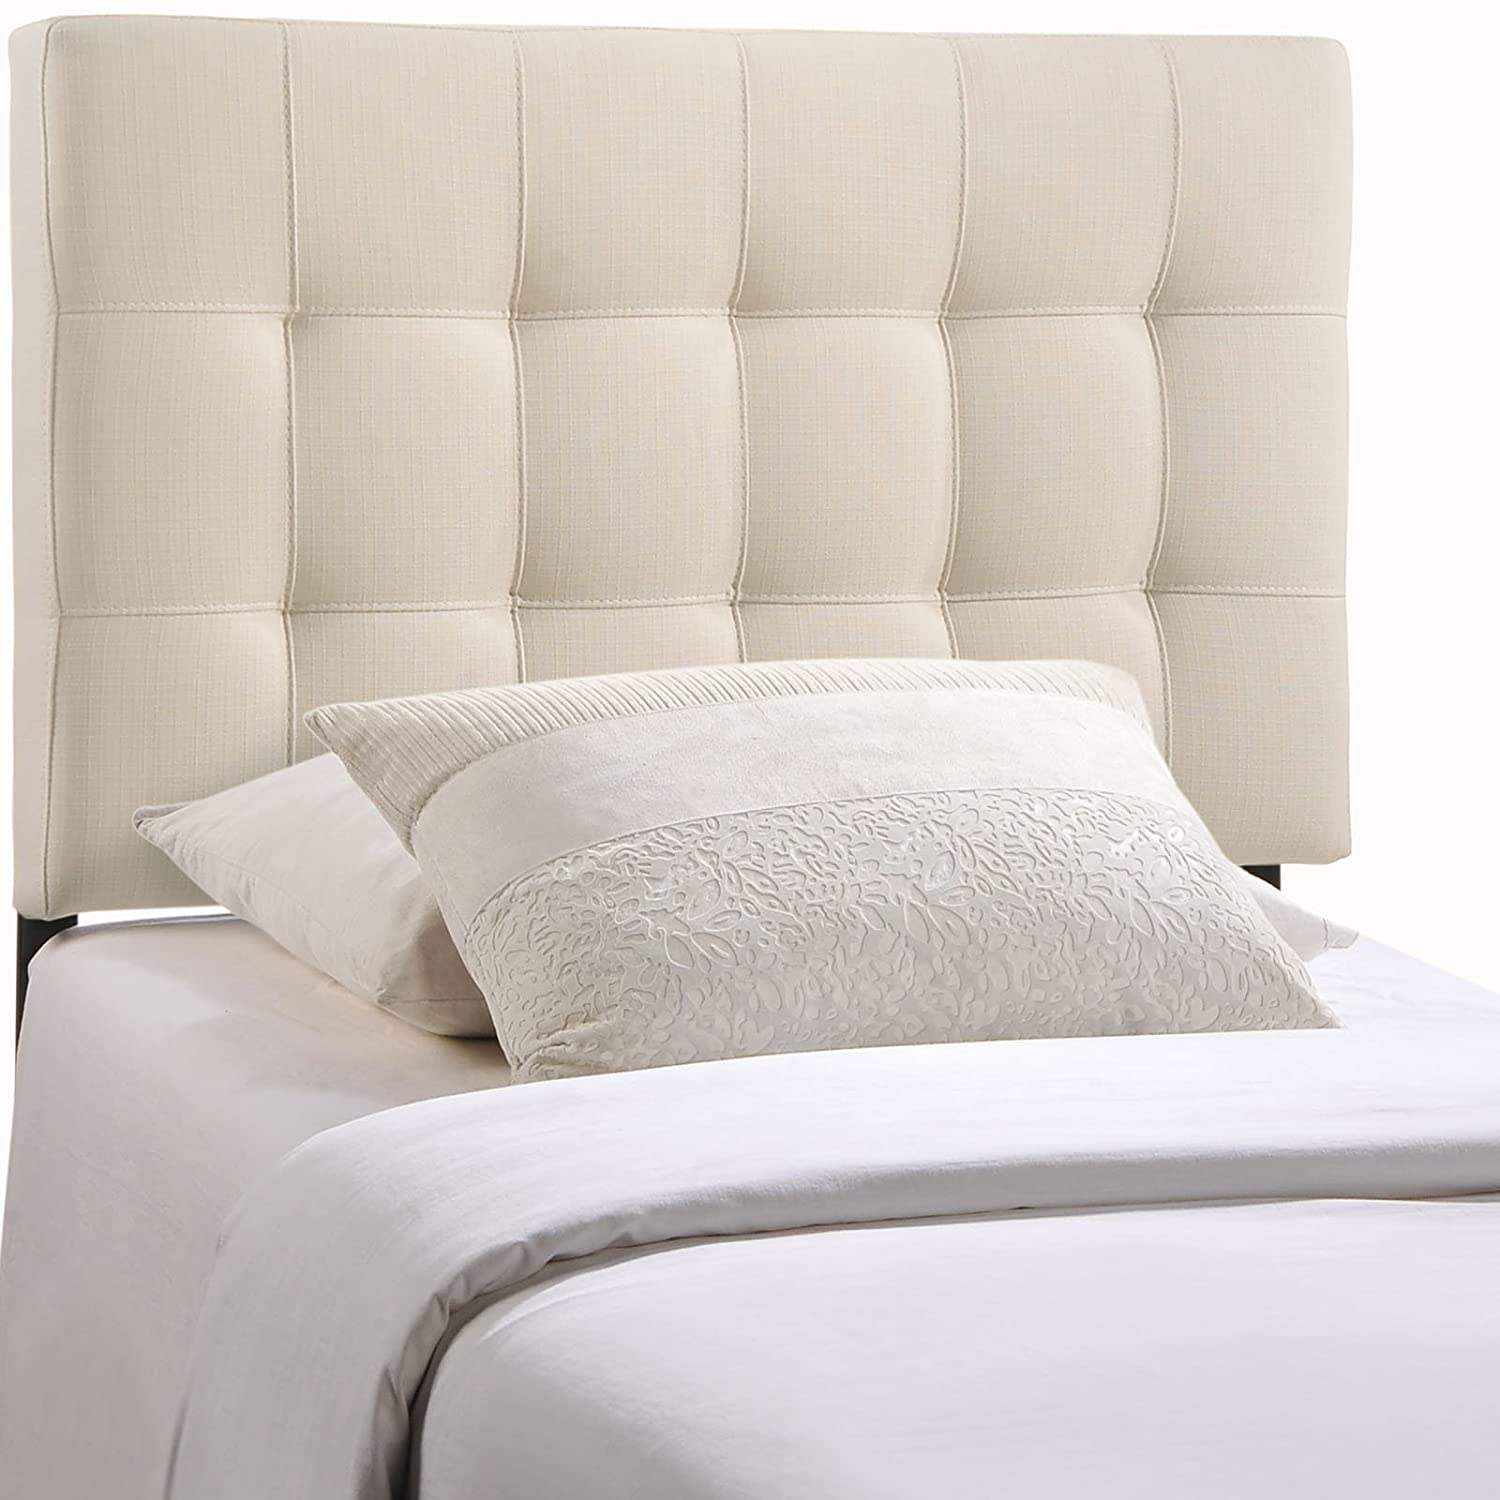 ivory size twin fabric tufted com dp upholstered in lily amazon modway headboard